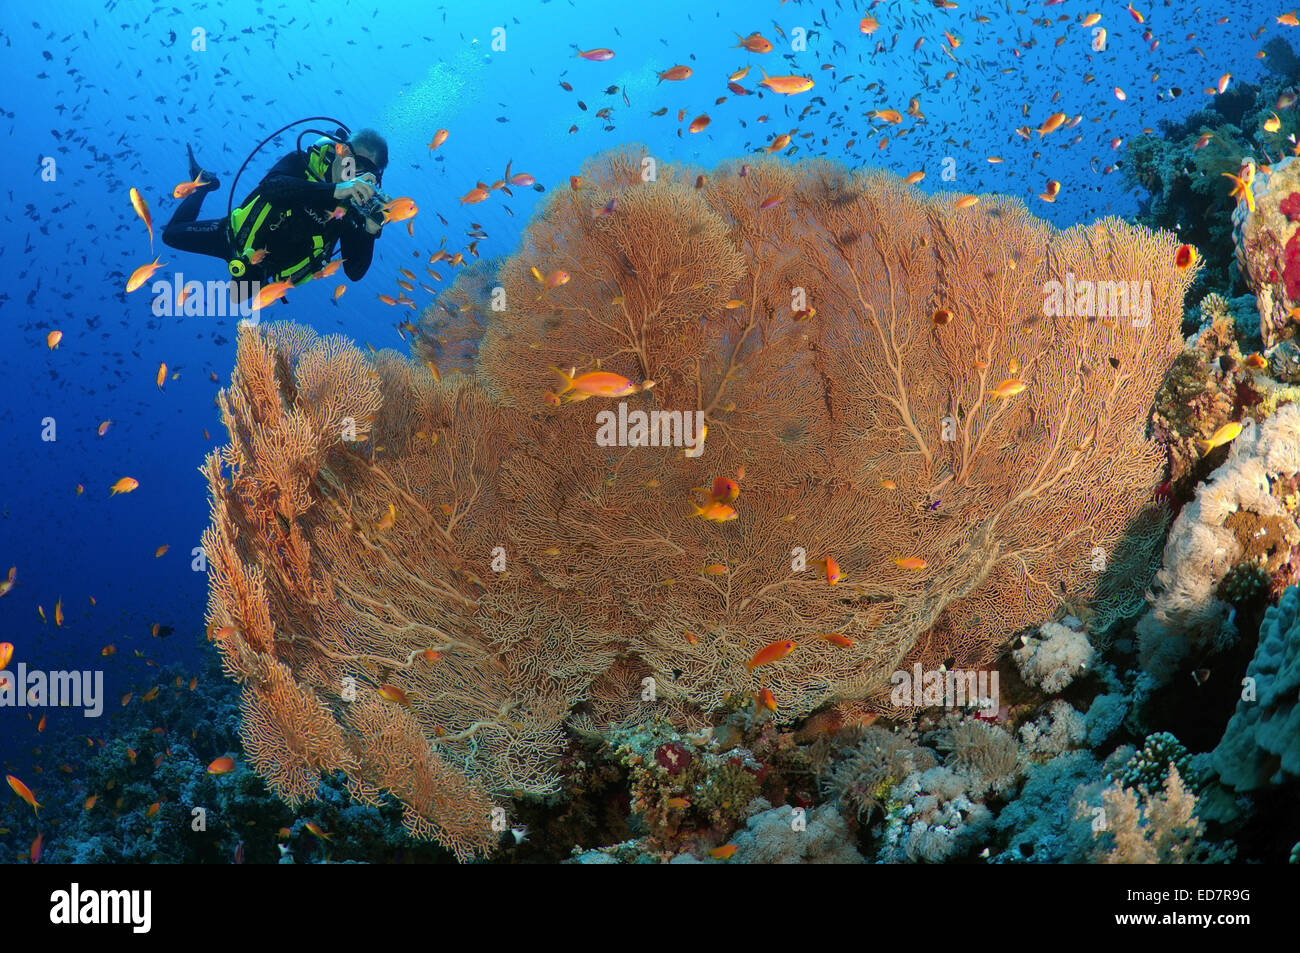 Diver photographing coral purple gorgonian seafan (Gorgonia flabellum) Red sea, Egypt, Africa Stock Photo